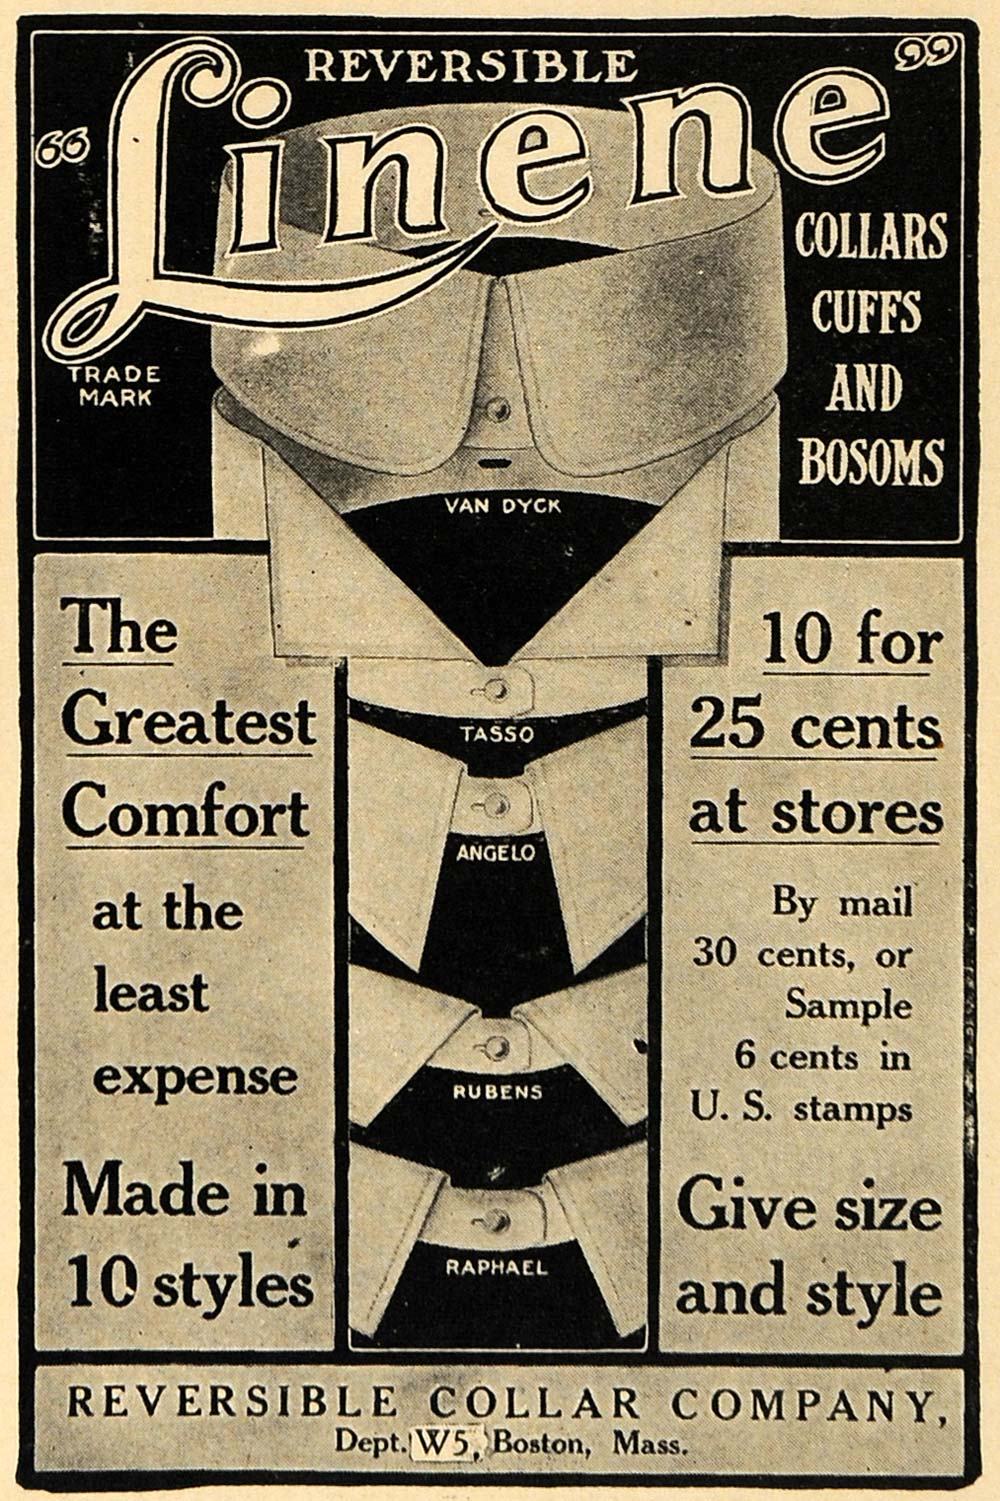 1910 Ad Reversible Linene Shirt Collars Cuffs Bosoms - ORIGINAL ADVERTISING TW1